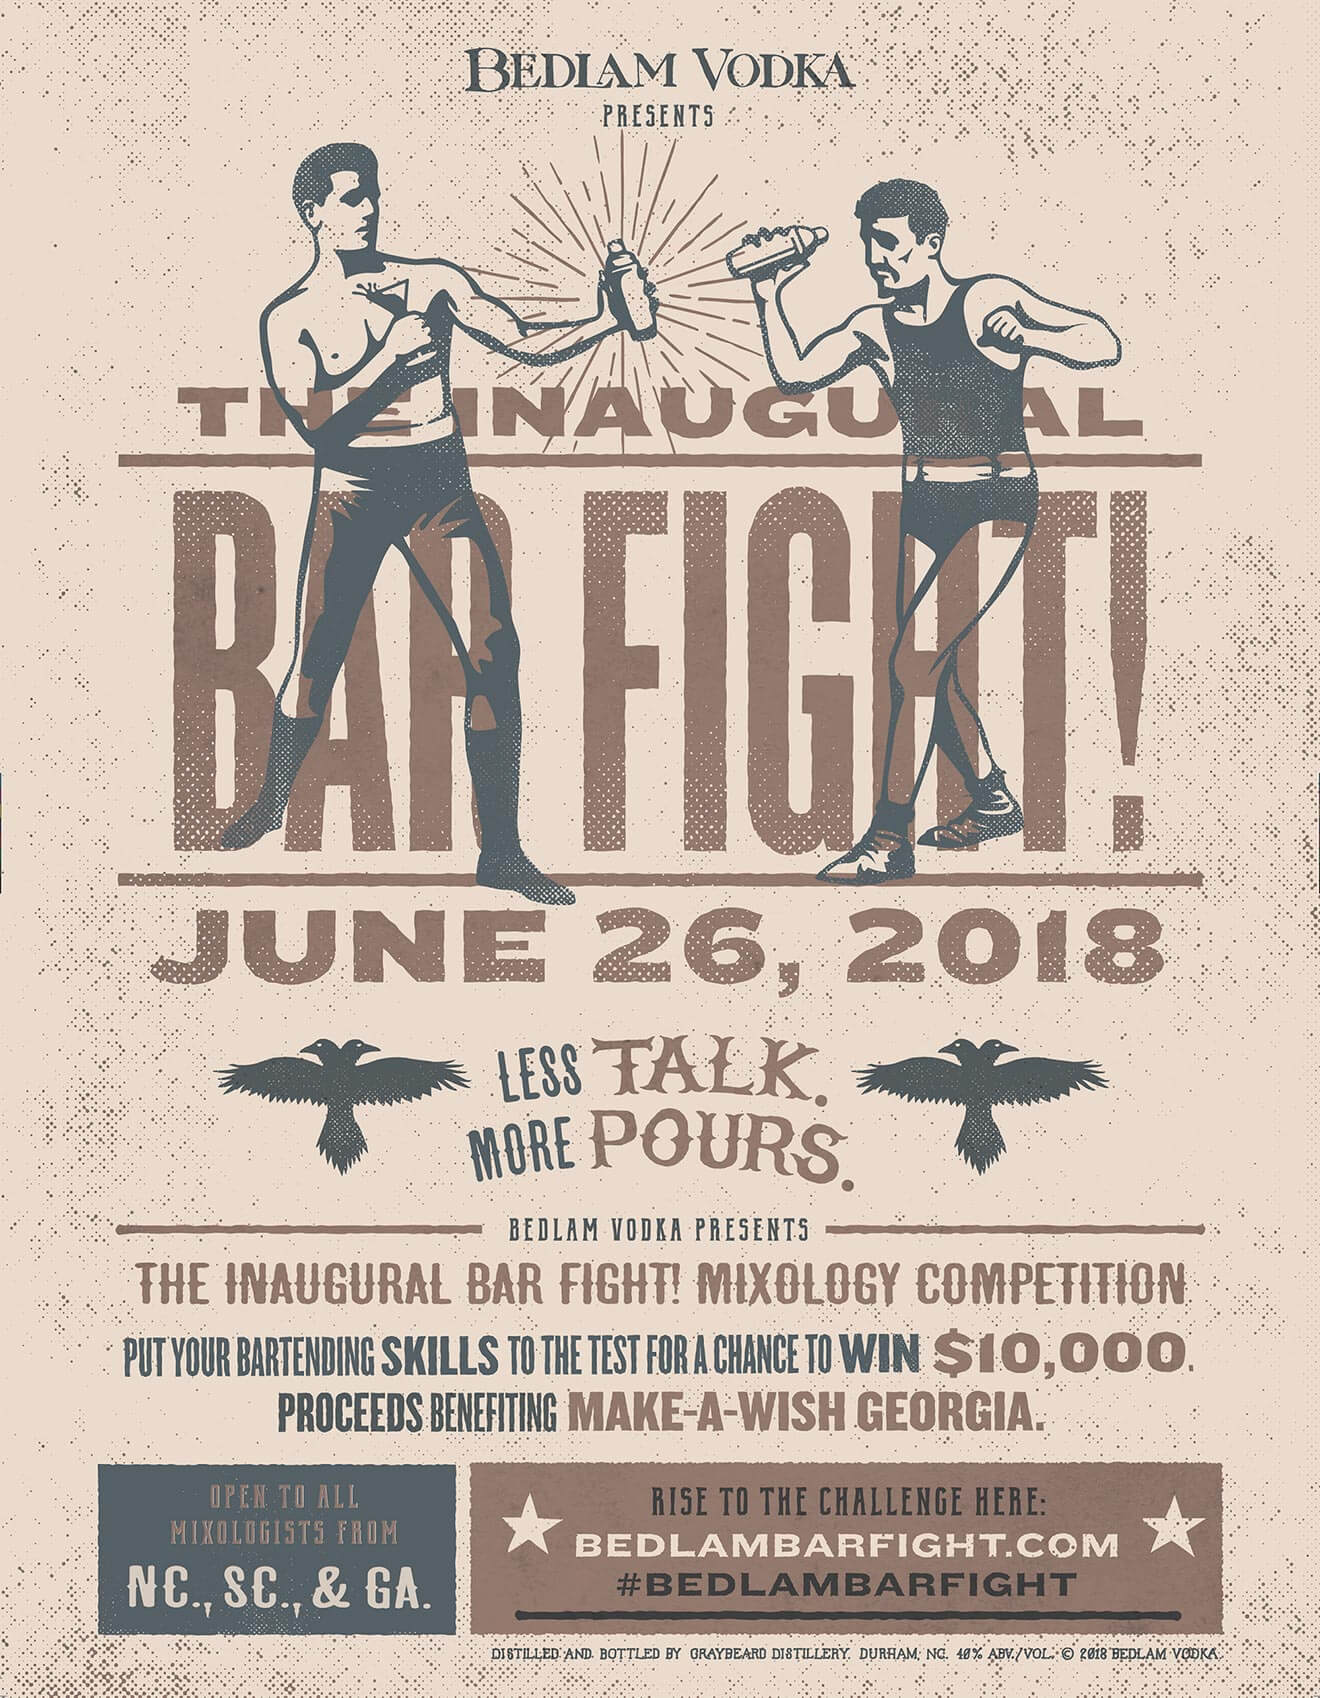 The Inaugural Bar Fight Competition, ad campaing poster